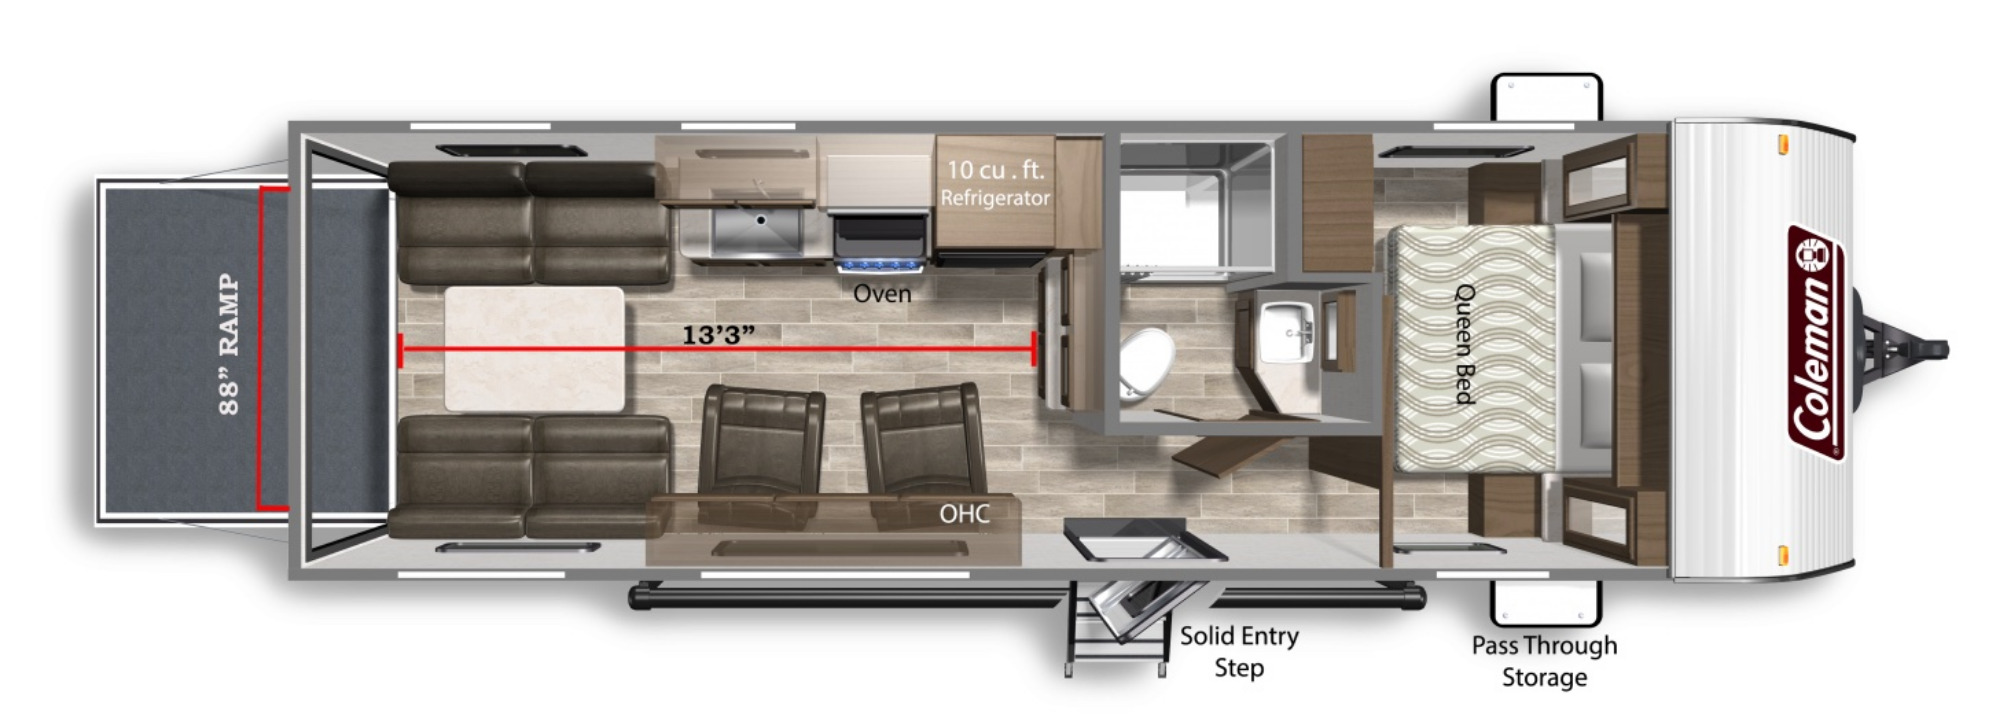 View Floor Plan for 2021 COLEMAN COLEMAN LANTERN 251TQ